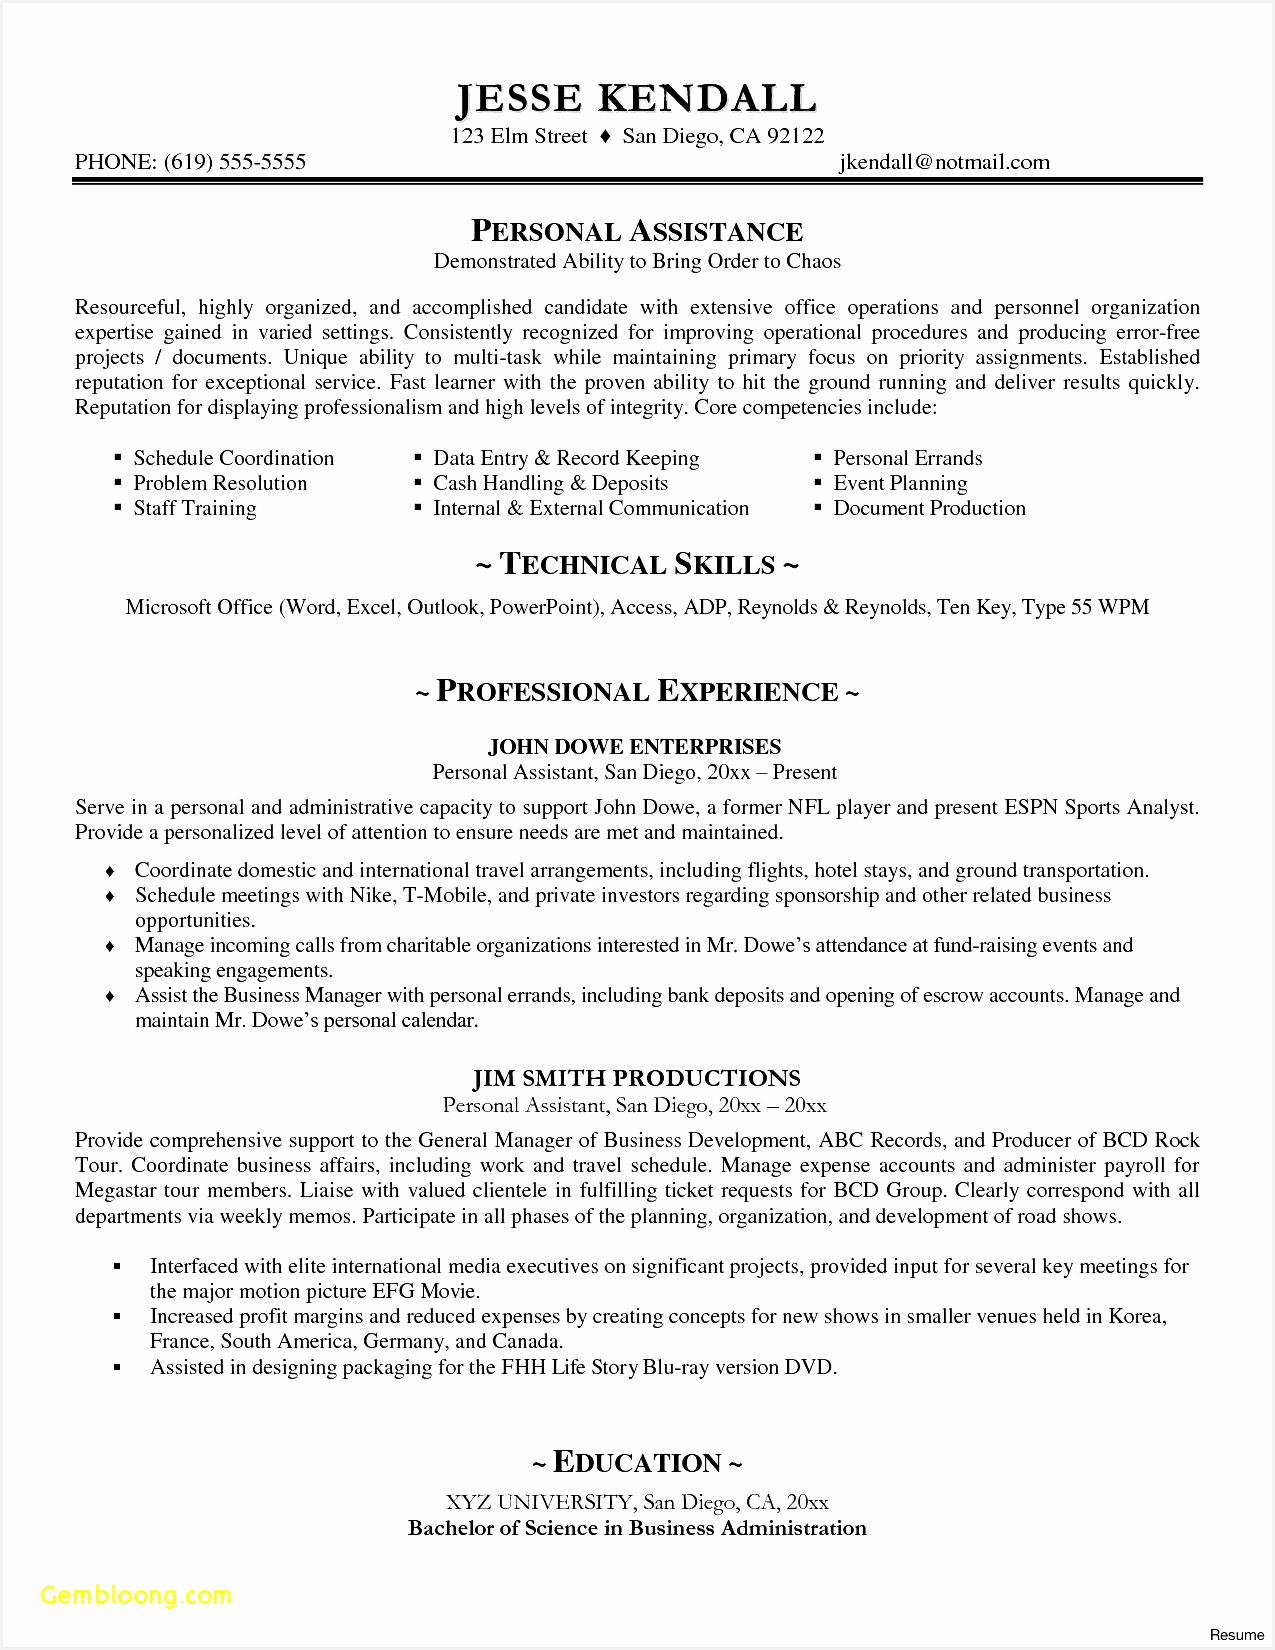 Free Resume Templates Word Free Download Resume Template Doc Free Download Executive Resume Templates Word Od16501275